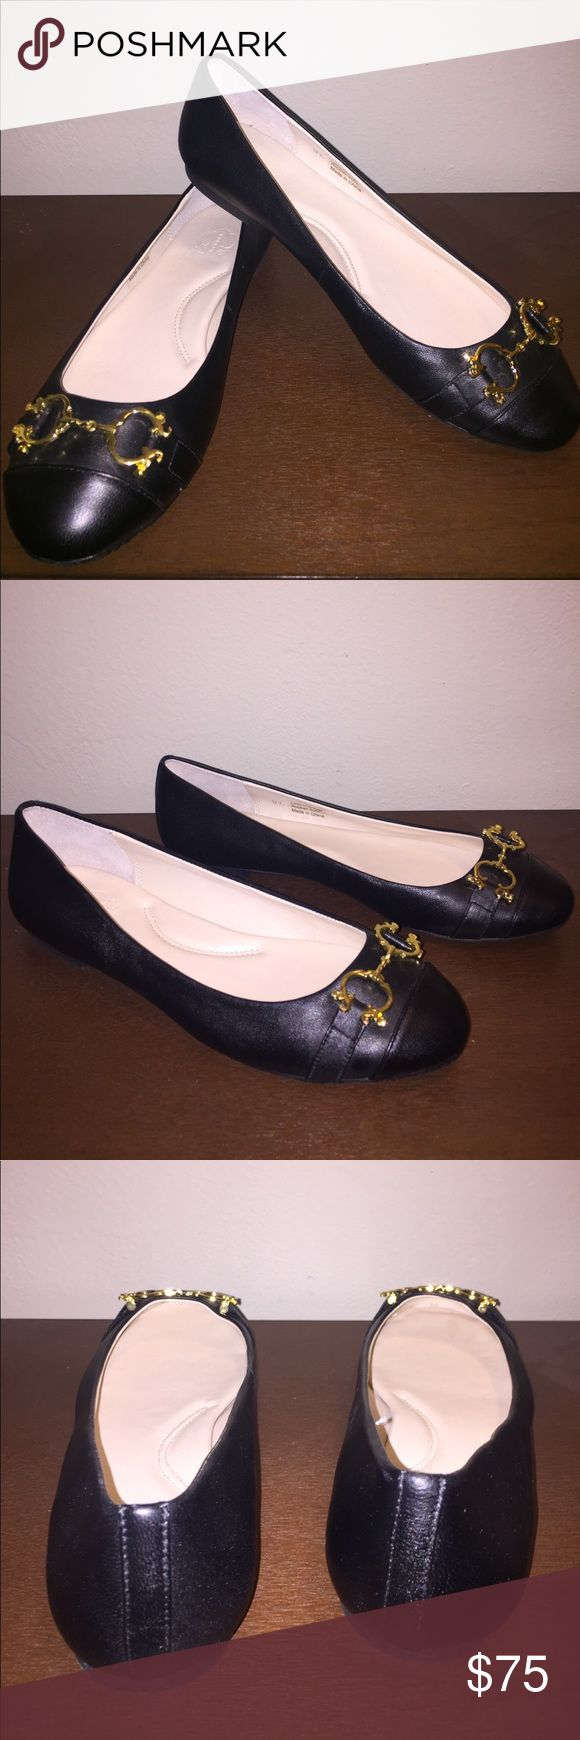 C Wonder Black leather flats C Wonder Black leather flats with gold metal hardware. Like new condition! Love them? Make a reasonable offer through the app! C Wonder Shoes Flats & Loafers